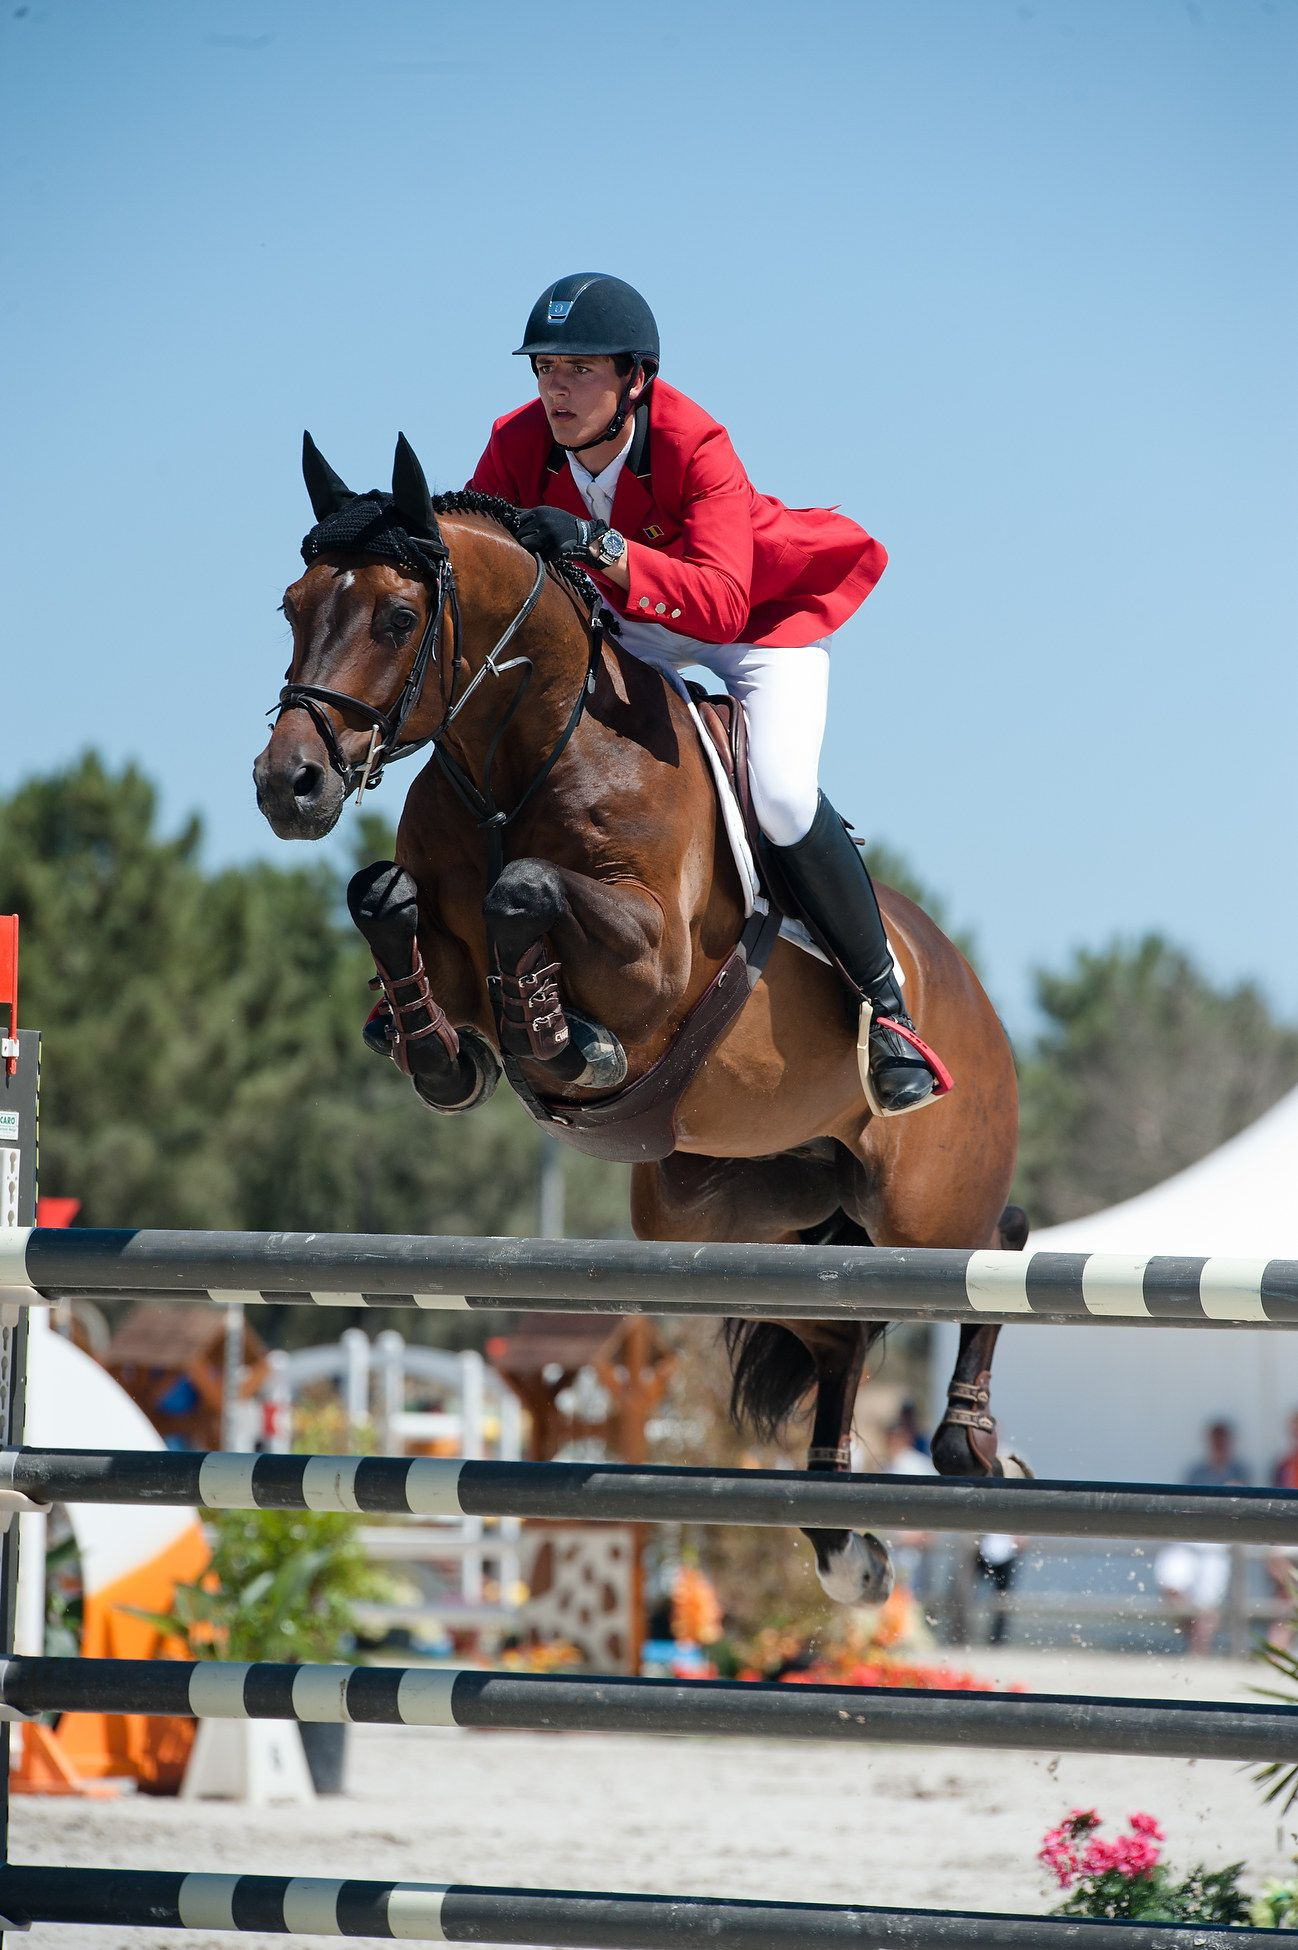 Double H Farms acquires Carlos V.H.P.Z for McLain Ward - Noelle Floyd